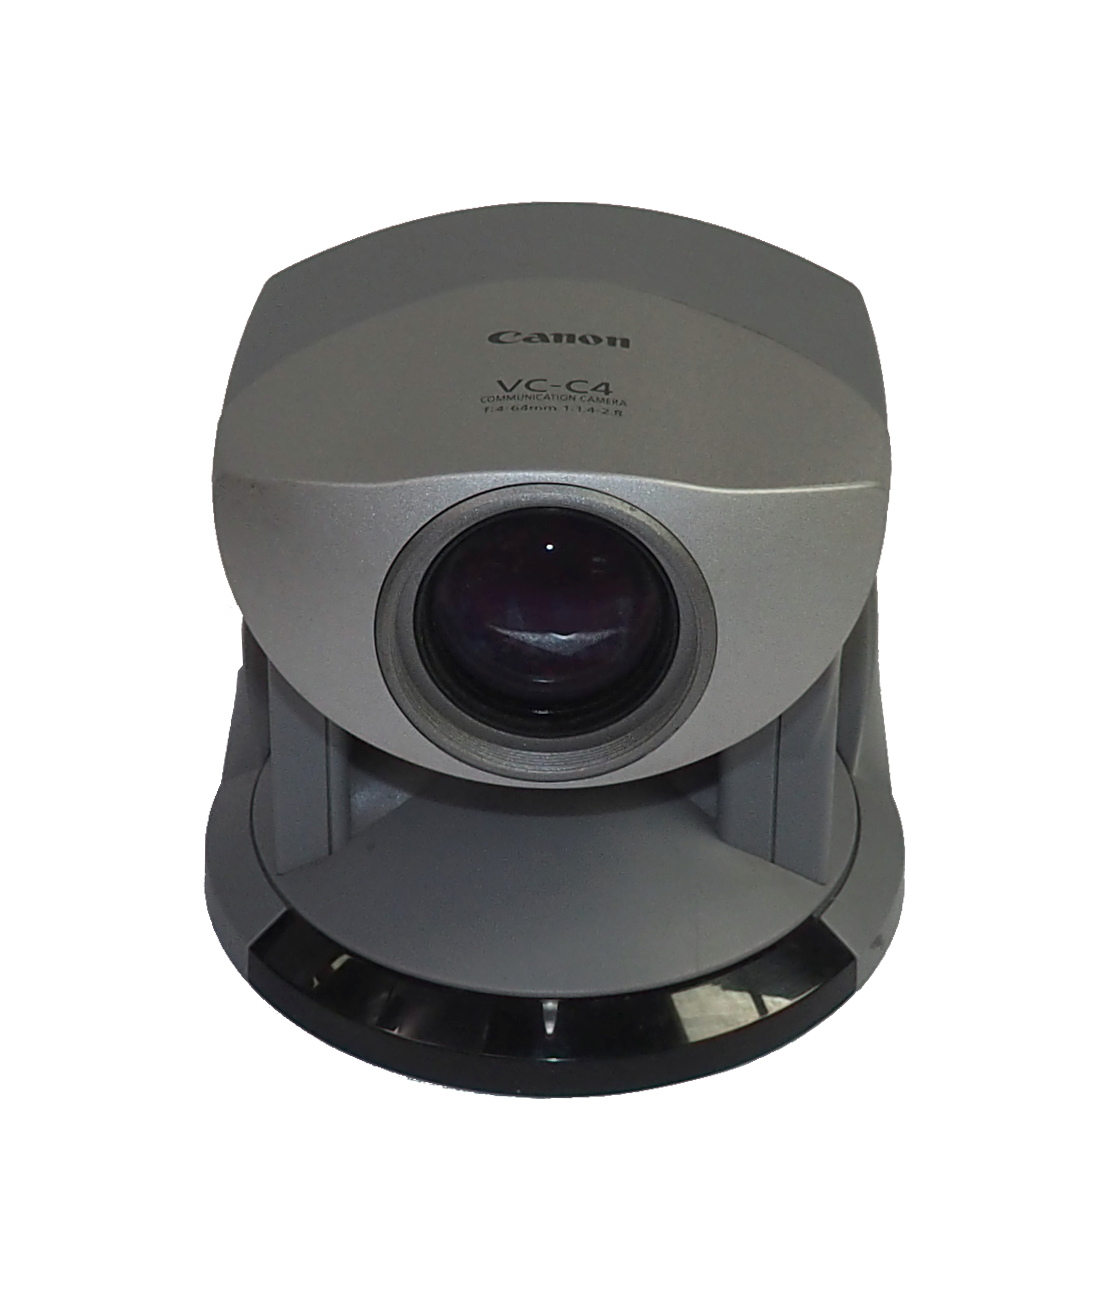 CANON VC C4 TREIBER WINDOWS XP